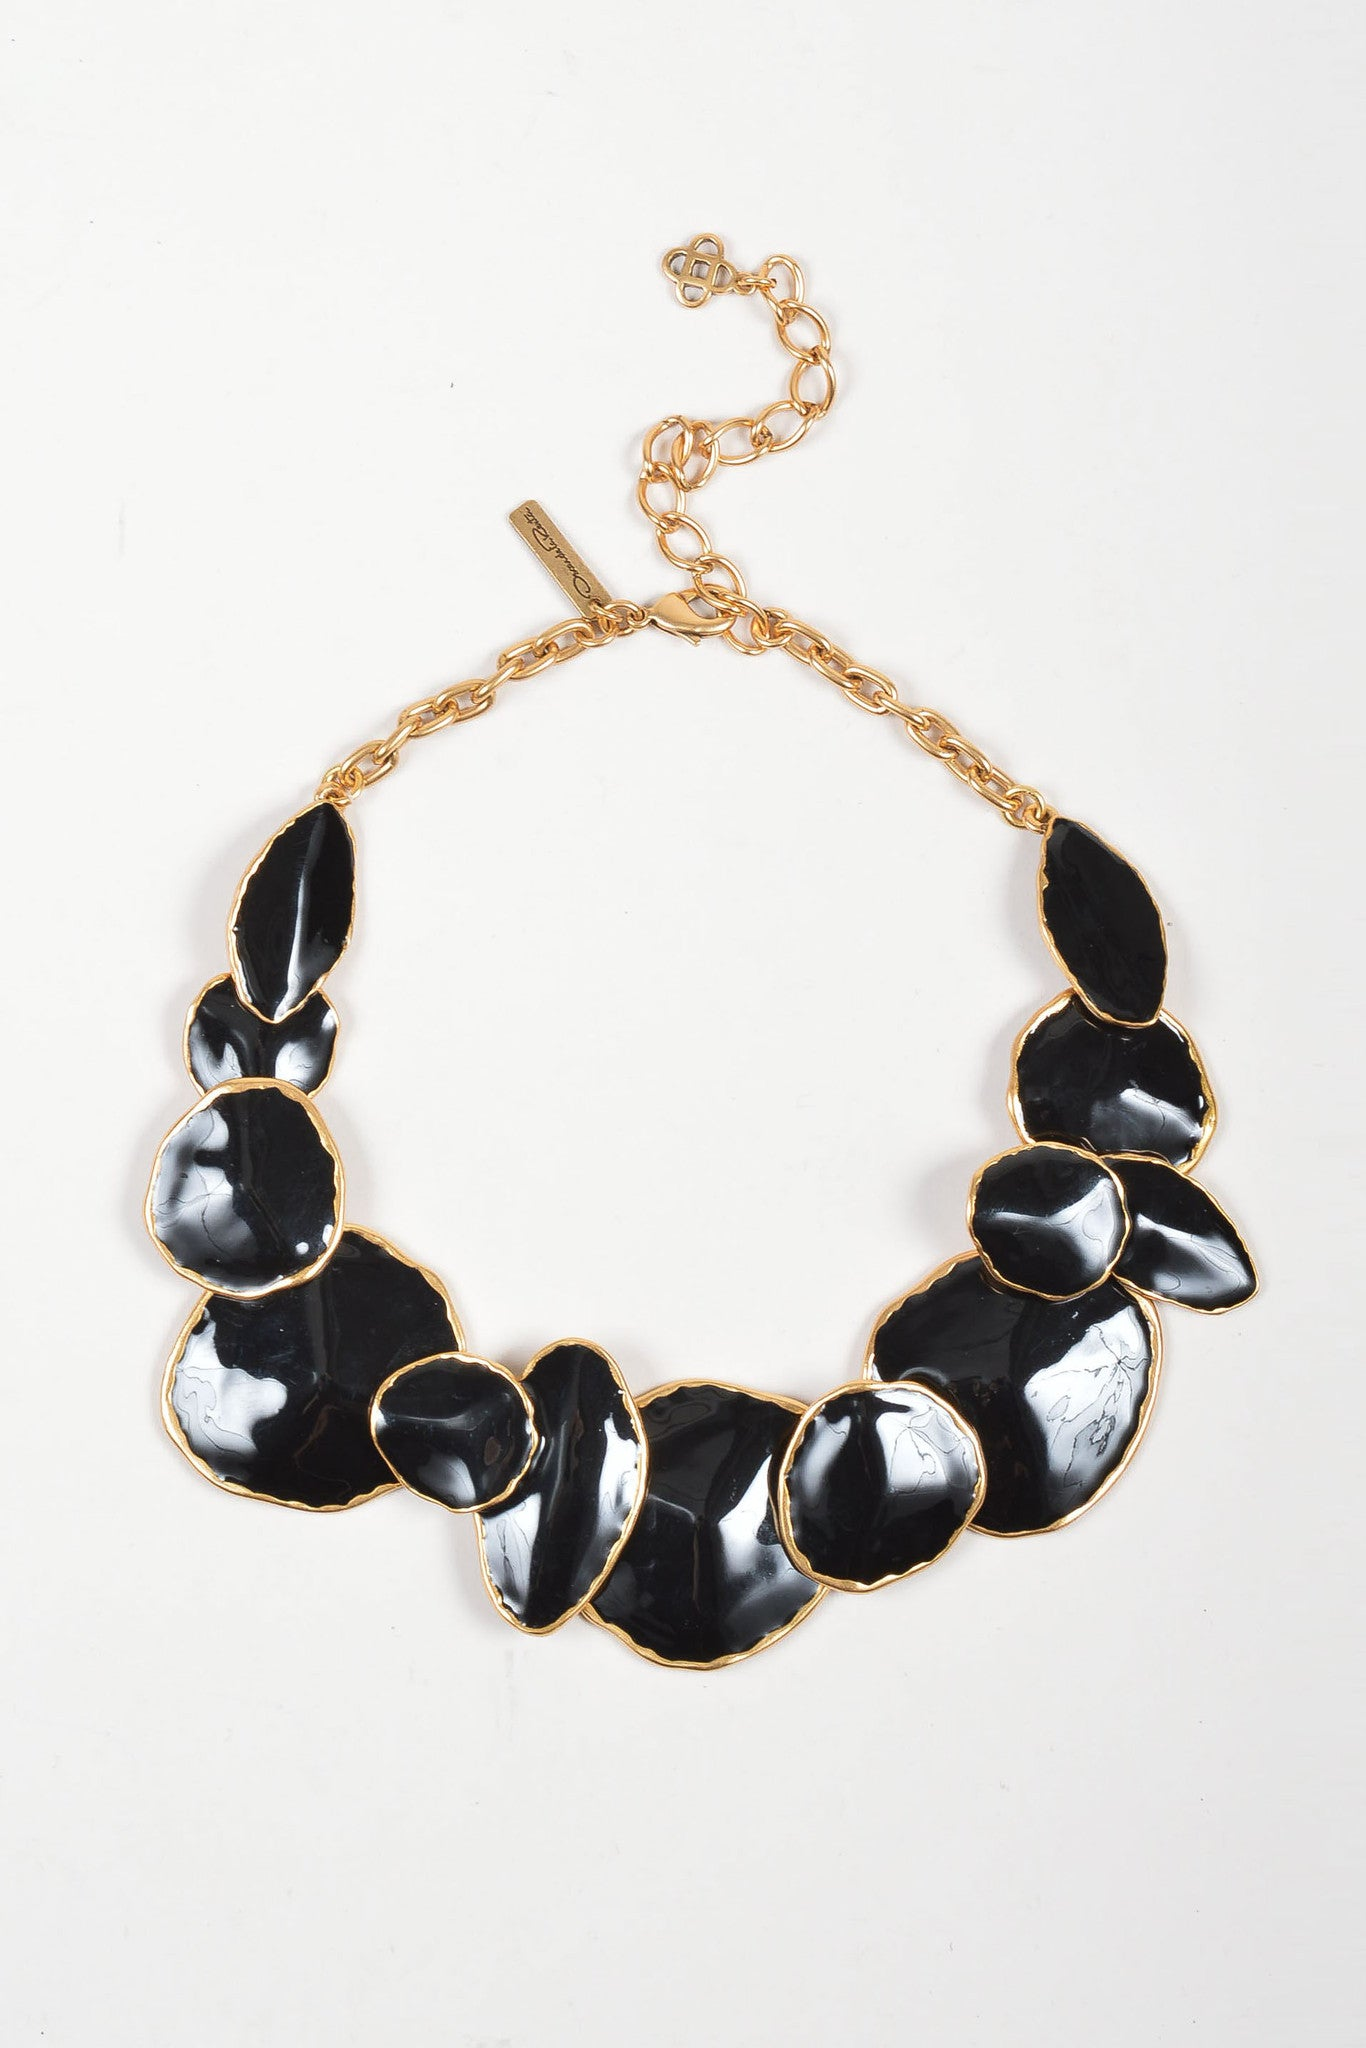 Oscar de la Renta Gold Toned and Black Enamel Oversized Chunky Medallion Necklace Frontview